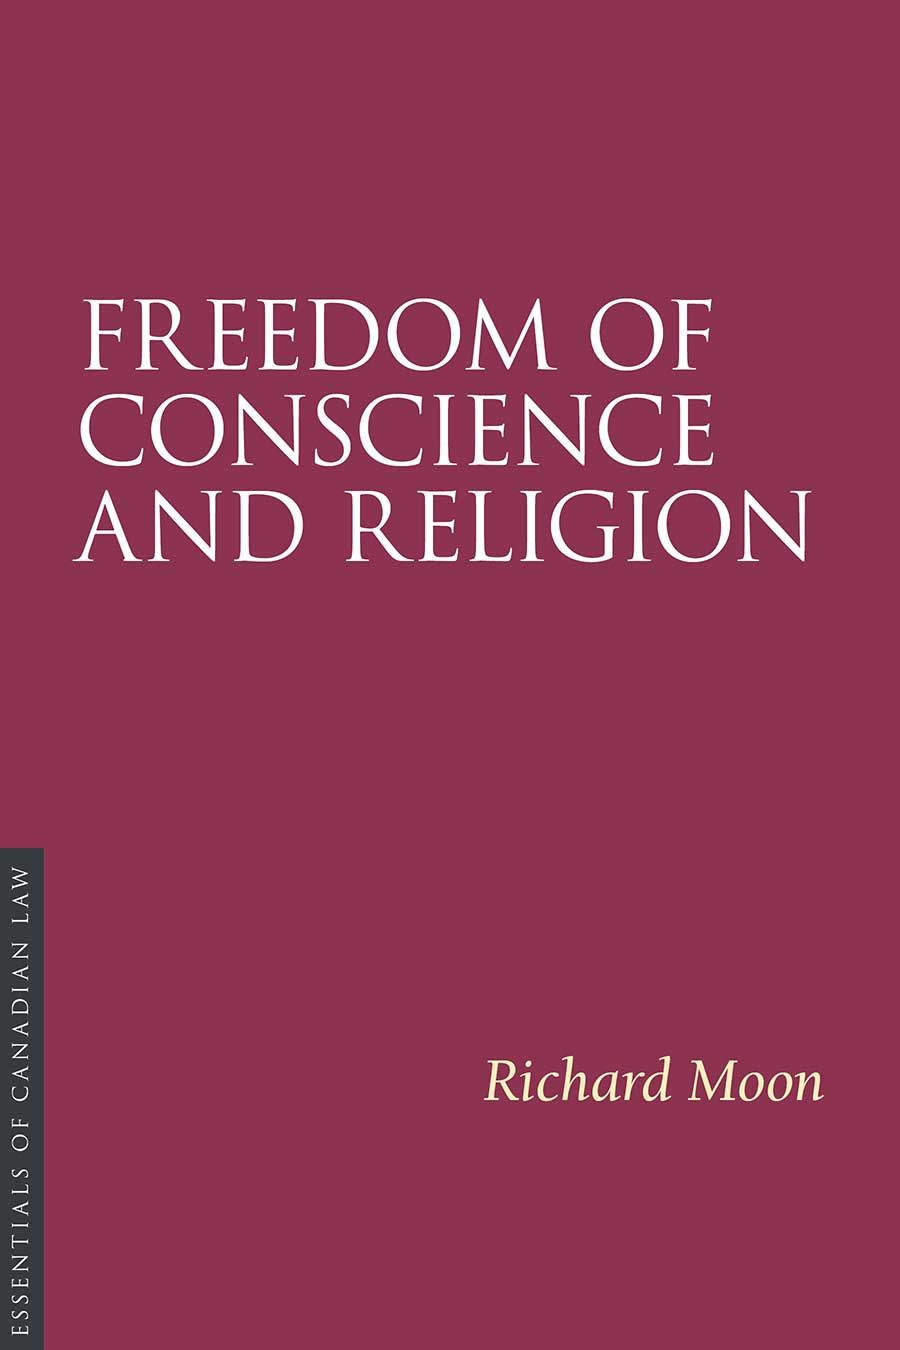 Freedom-of-Conscience-and-Religion